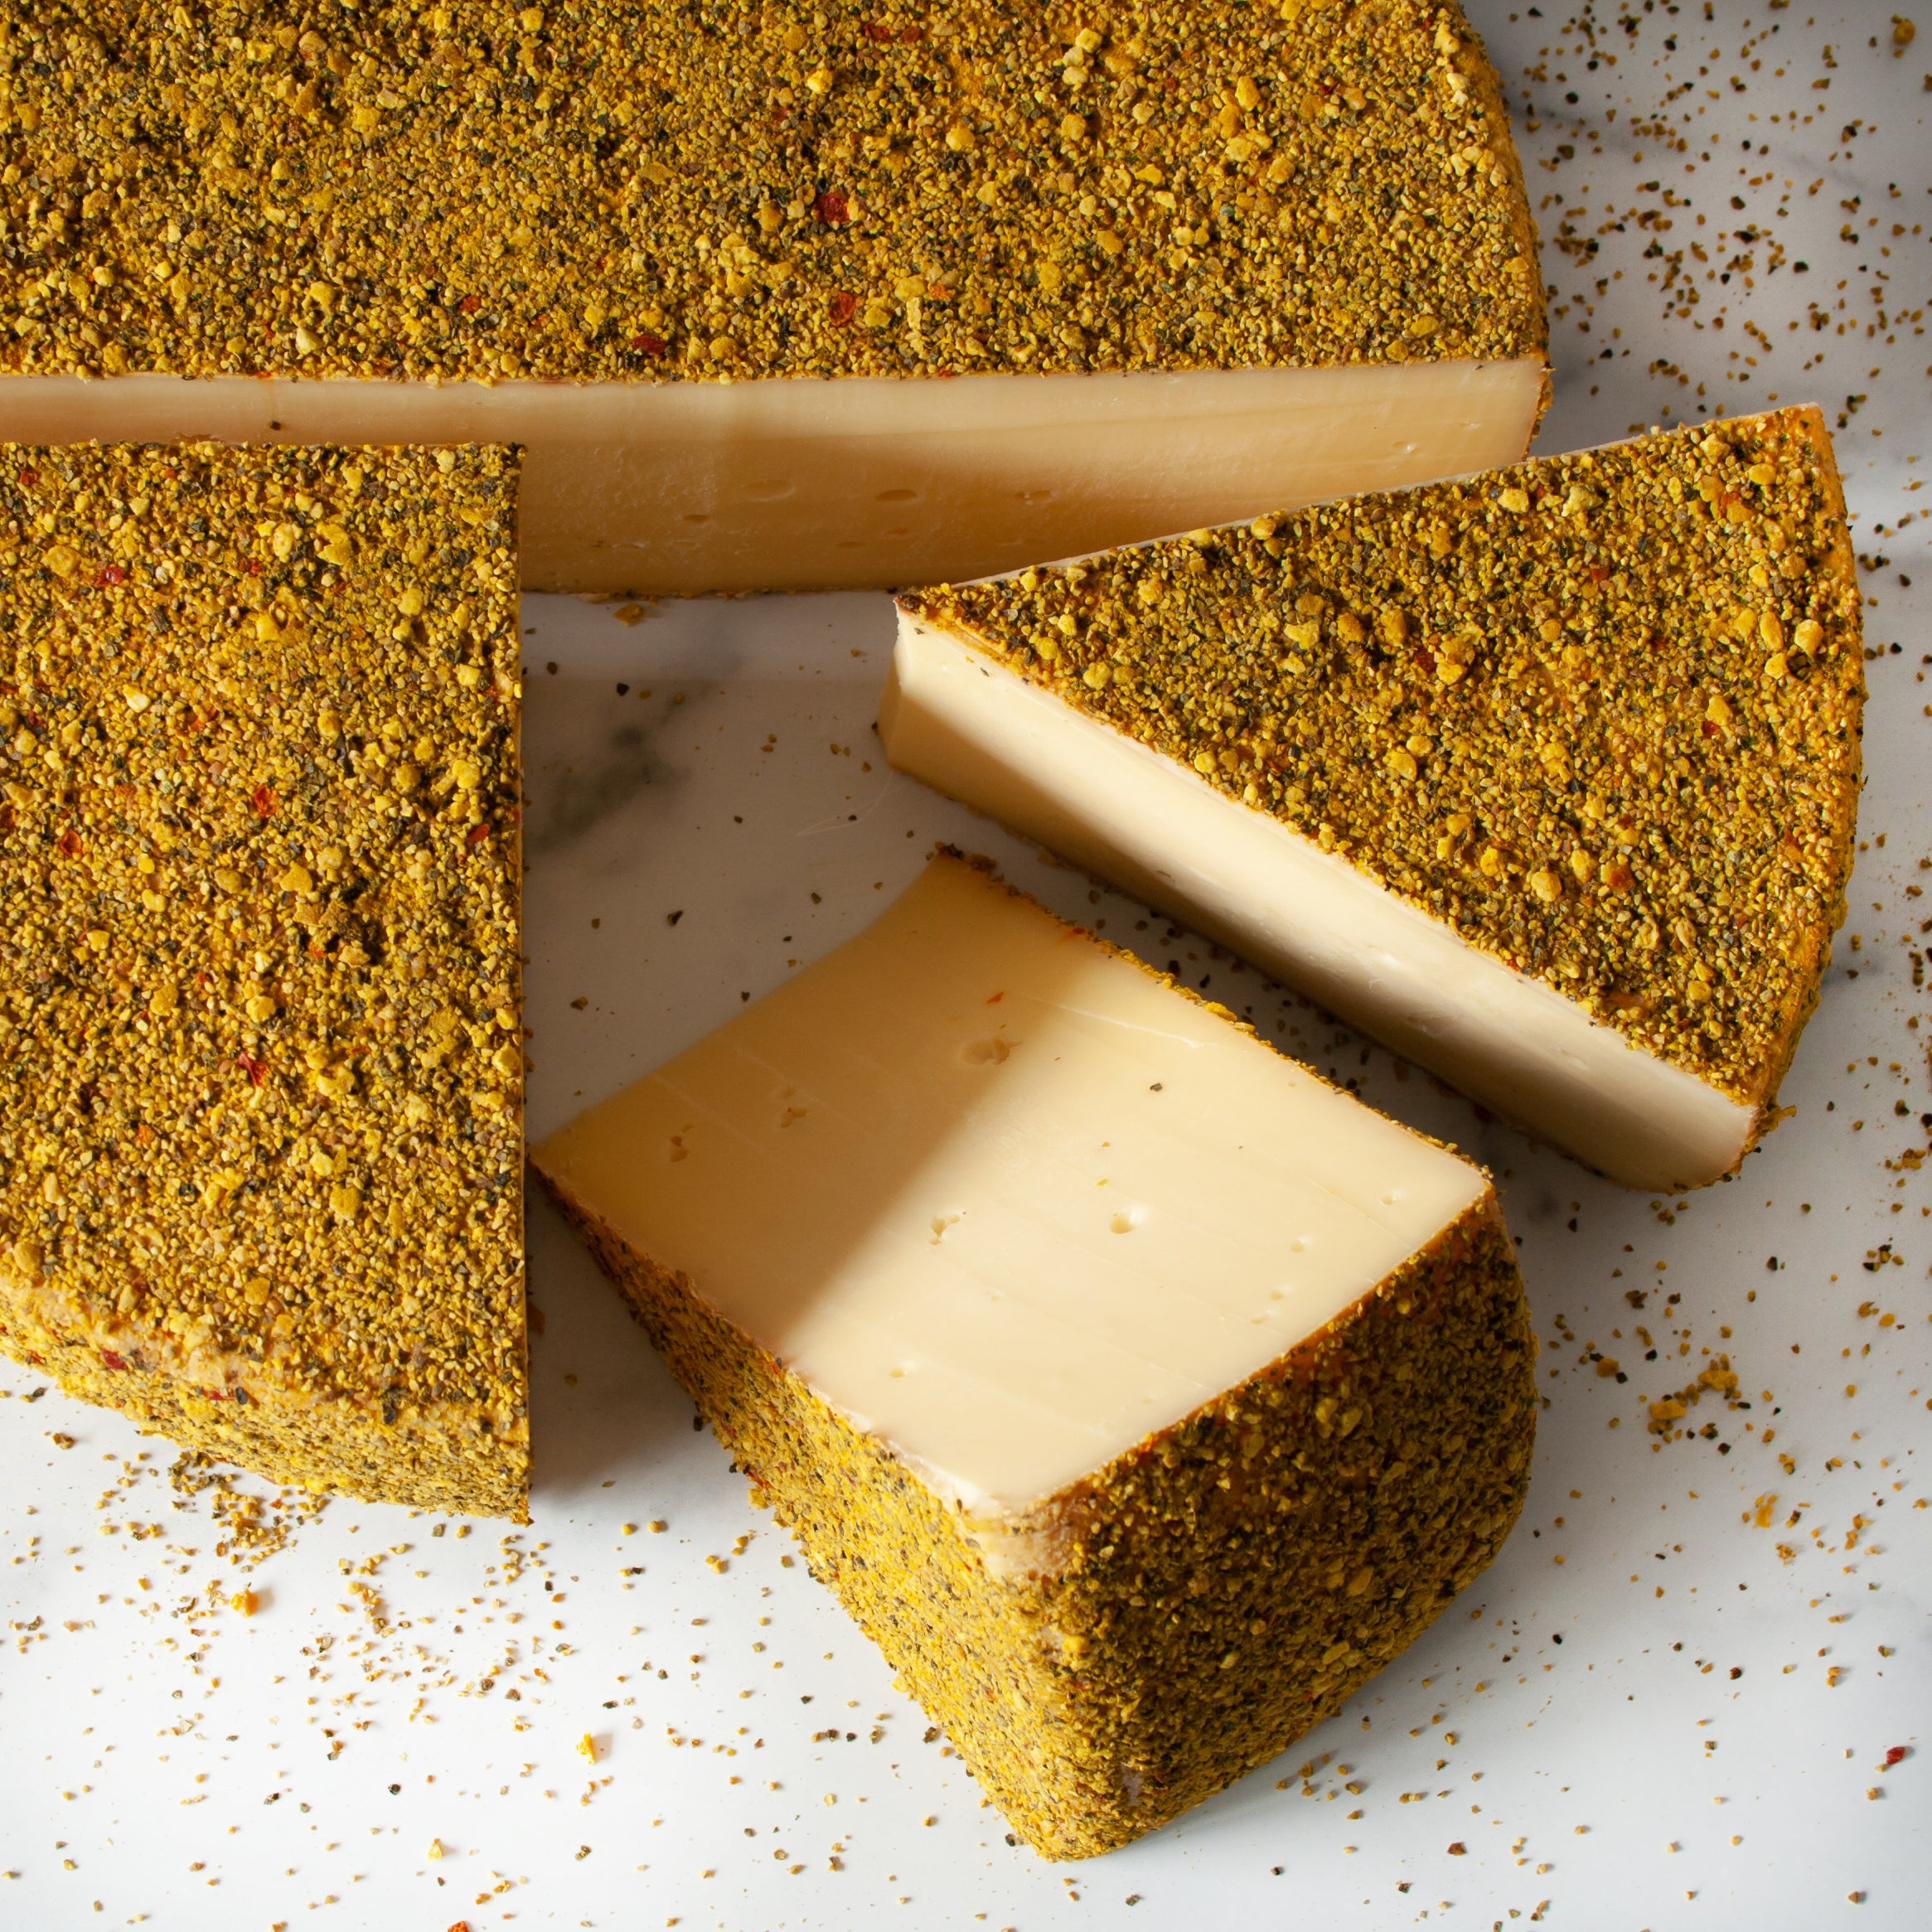 Baldauf Lemon Pepper Cheese